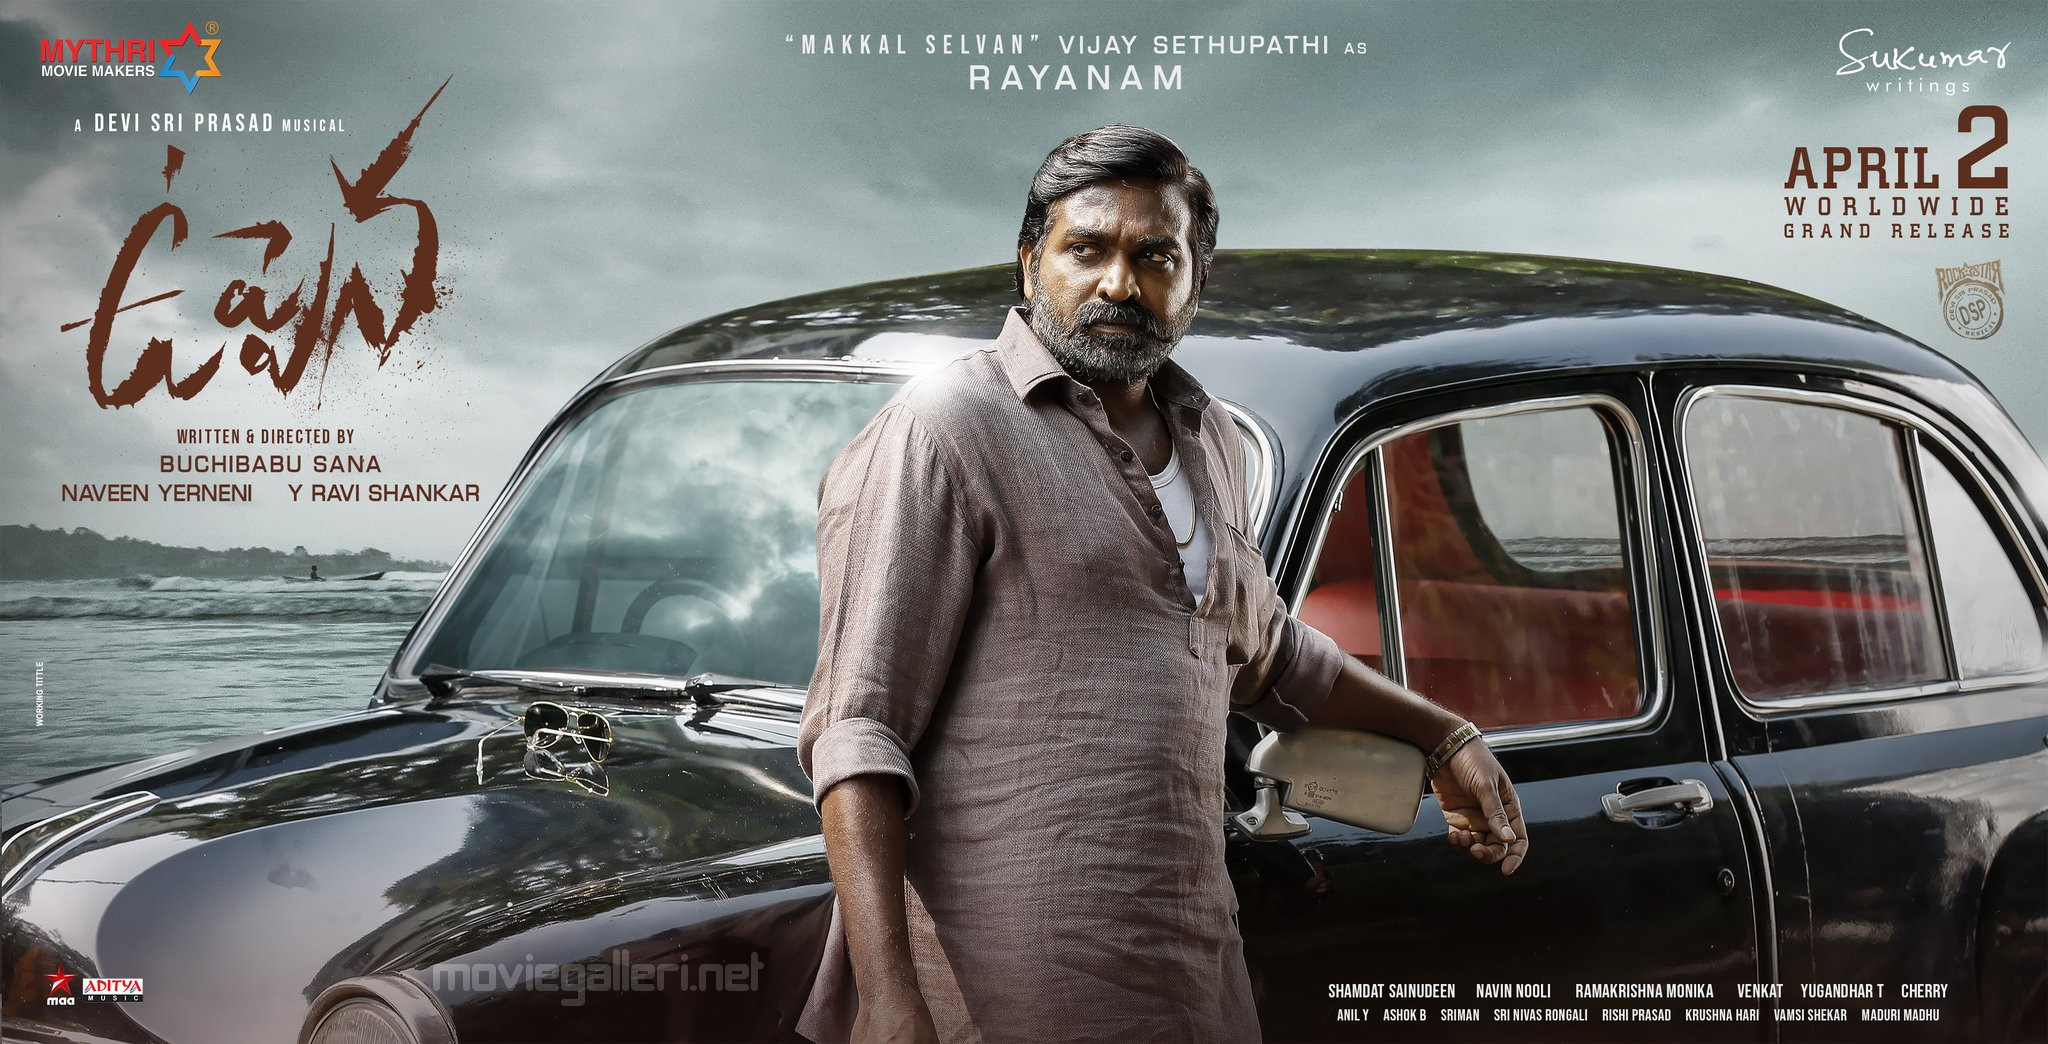 Vijay Sethupathi Uppena Movie First Look Poster Released